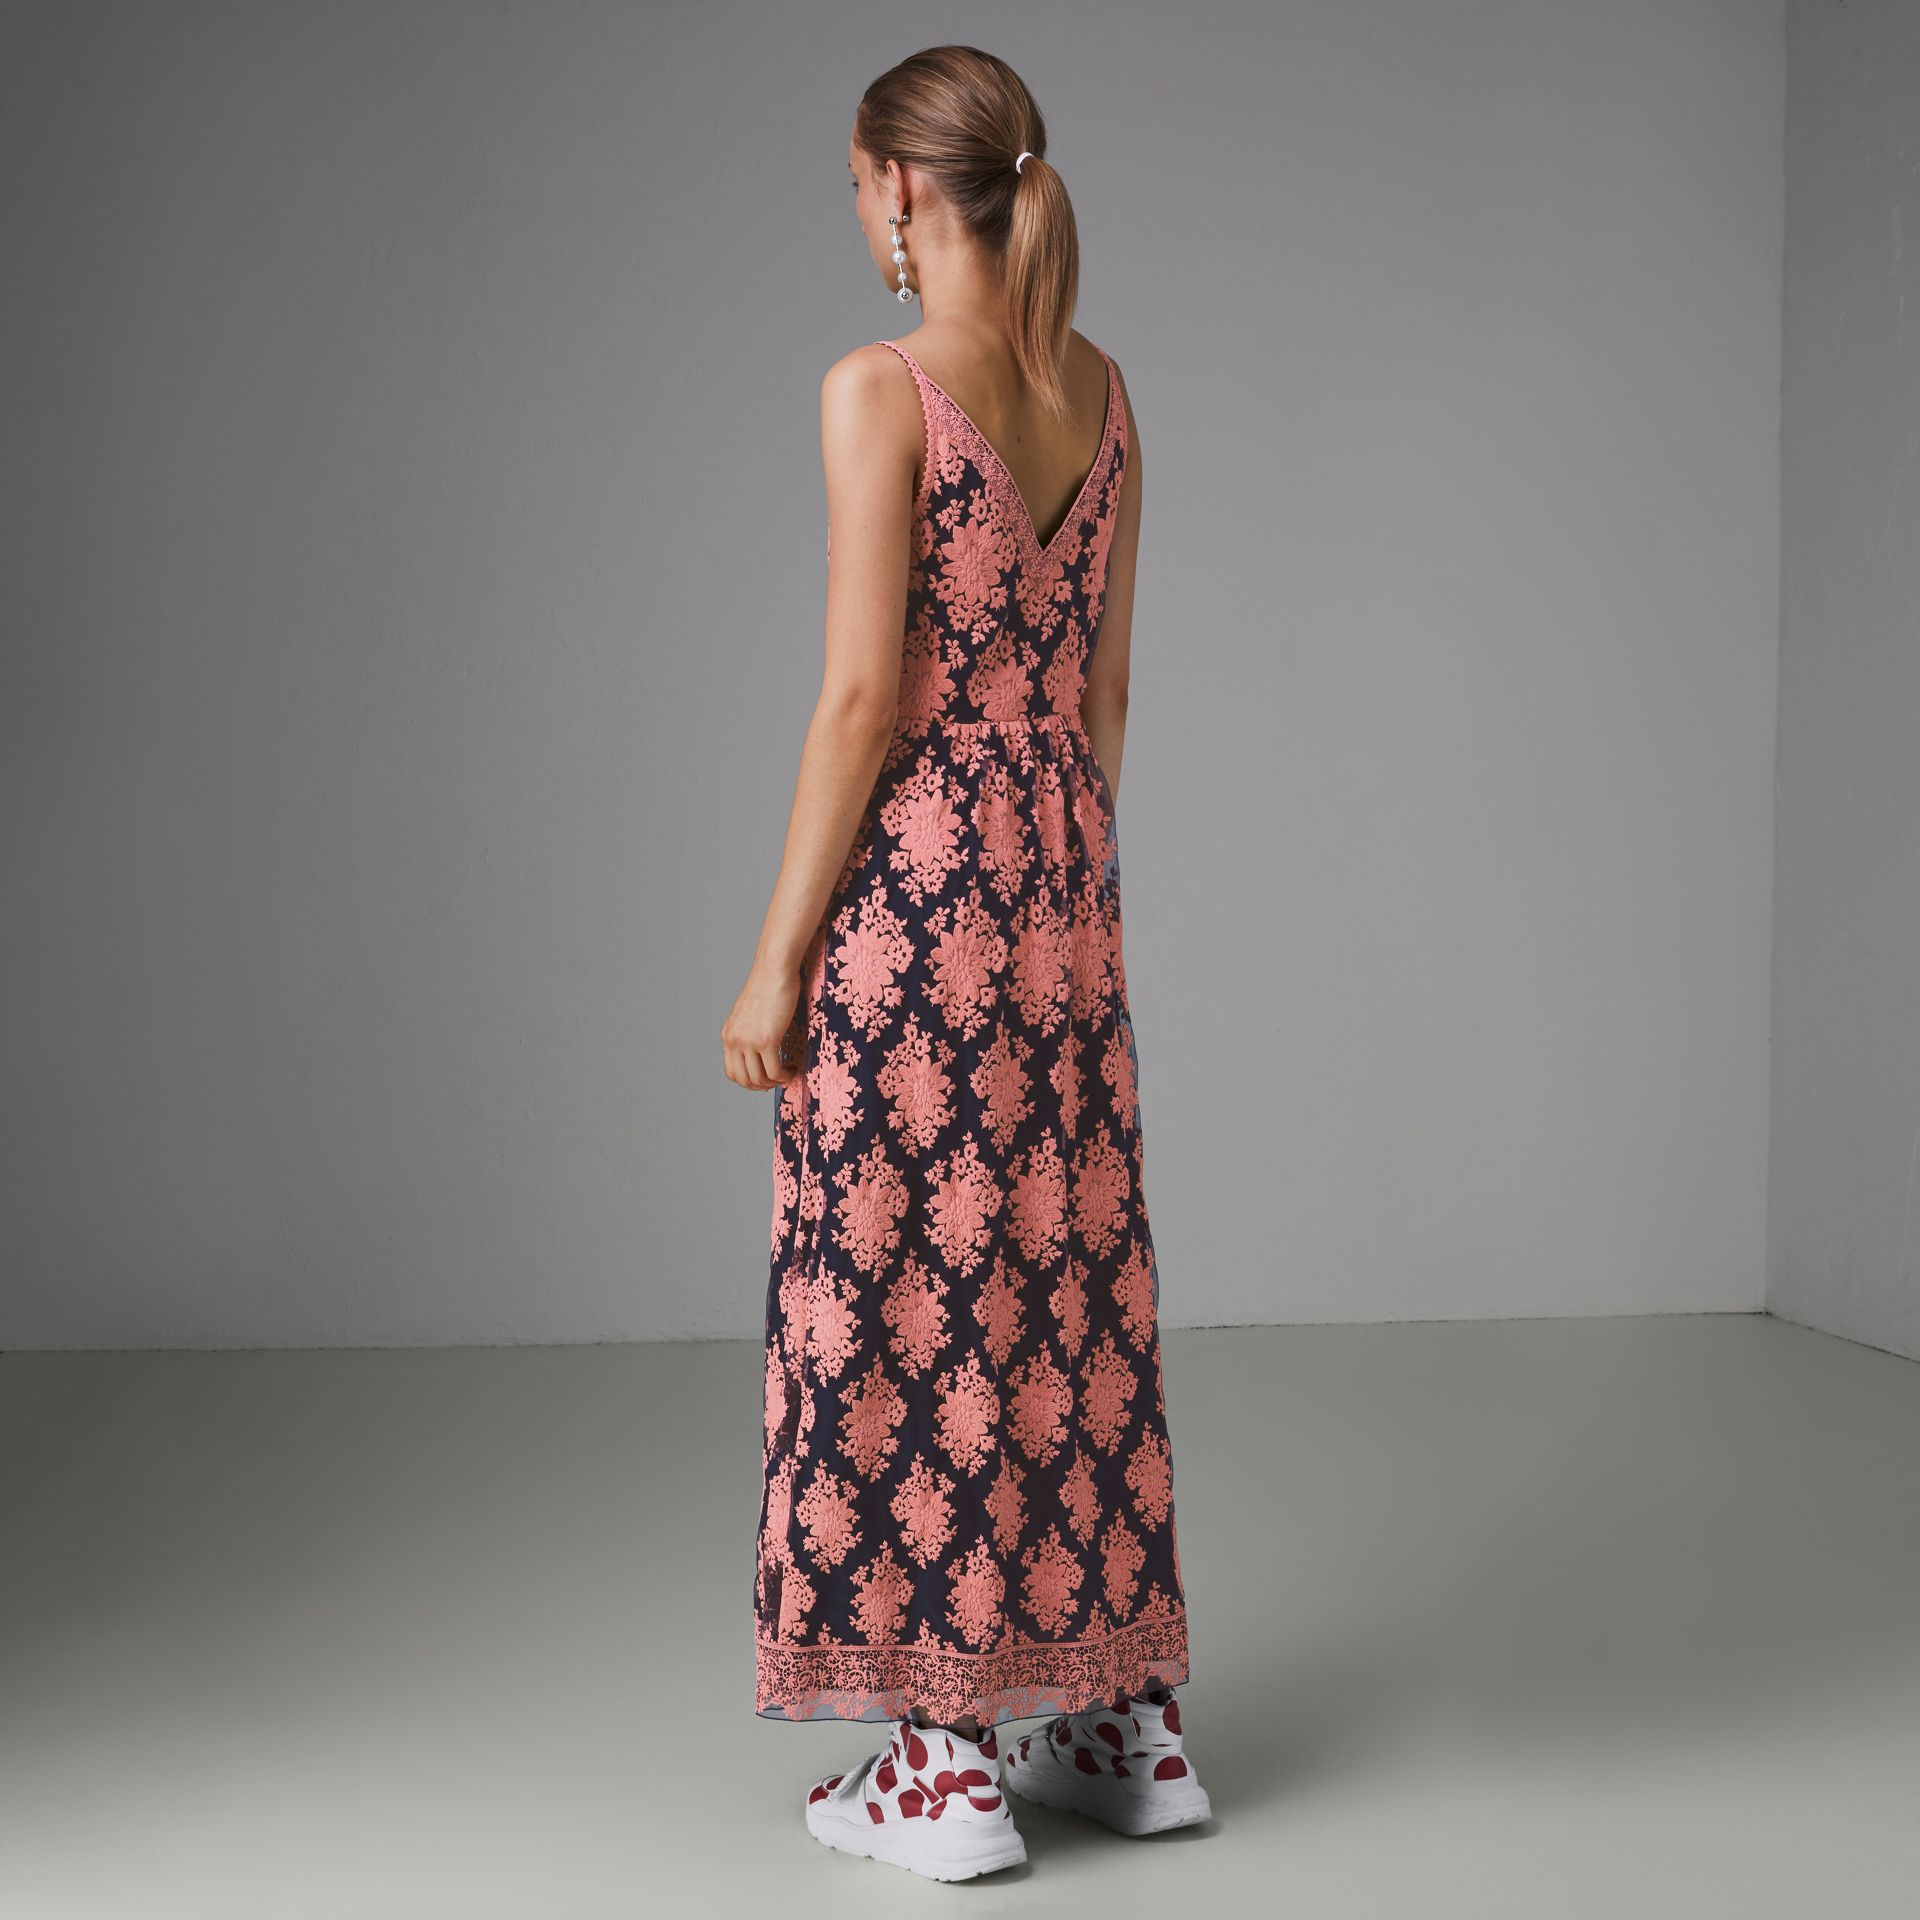 Floral-embroidered Sleeveless Dress in Rose/midnight Blue - Women | Burberry Hong Kong - gallery image 2